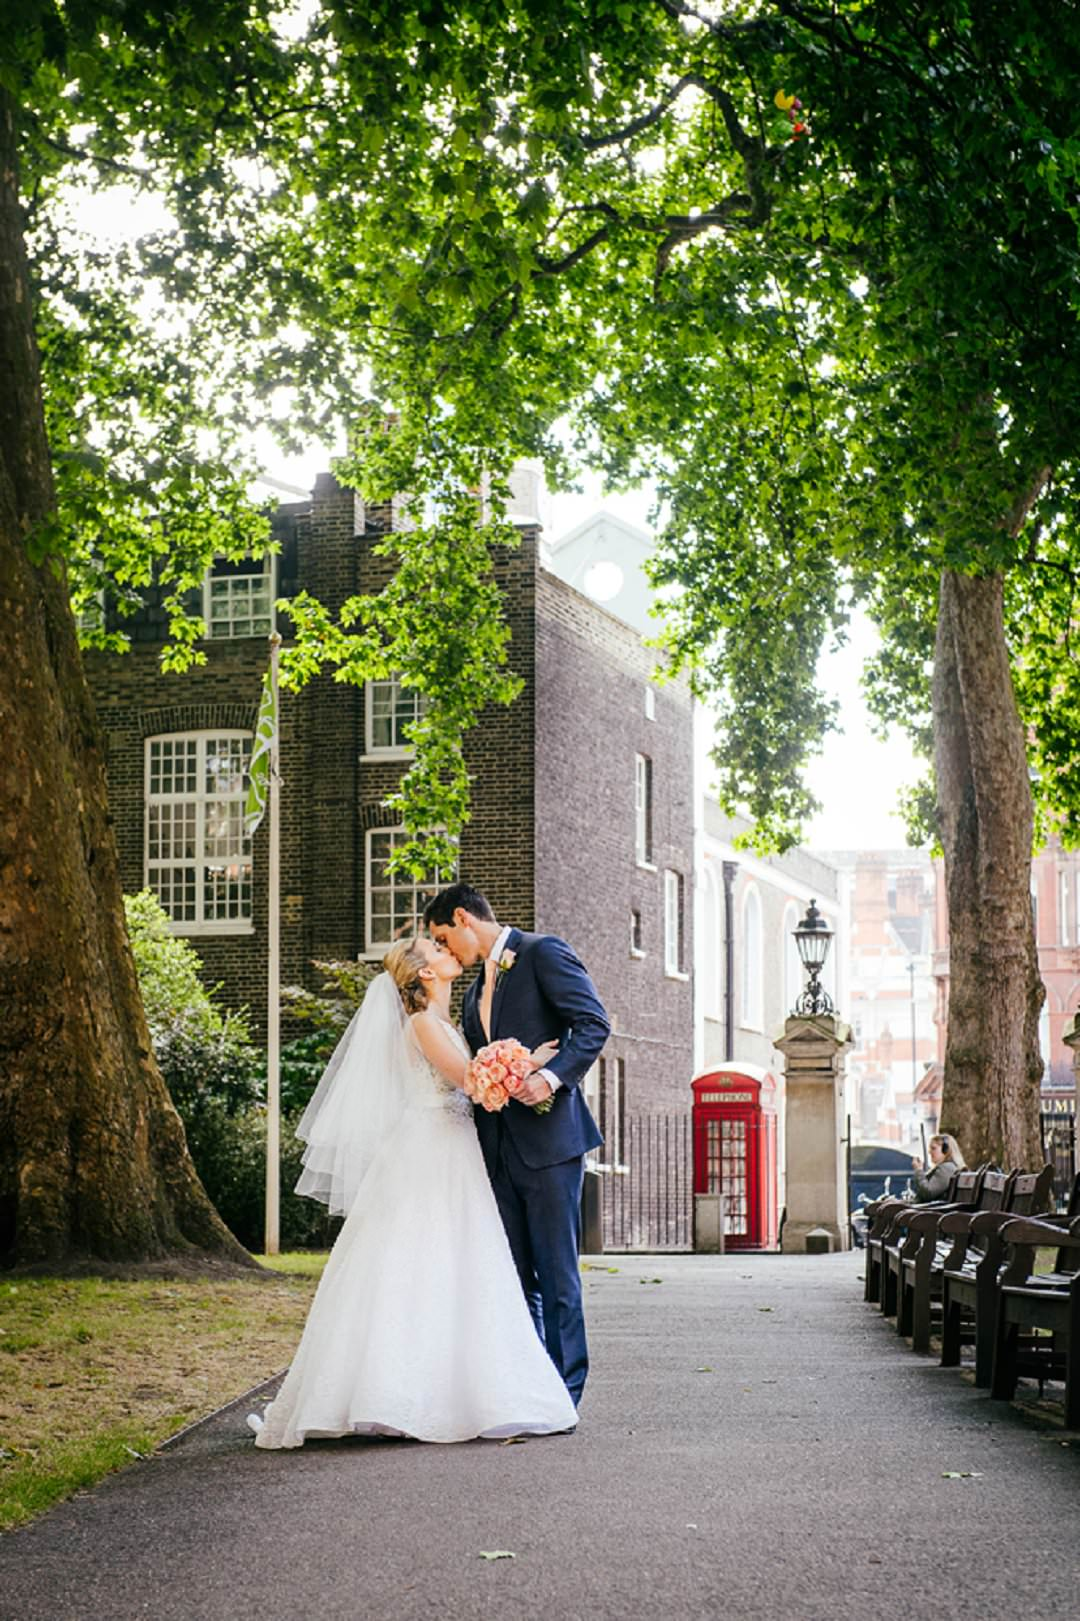 bride and groom in park with red telephone box in central London